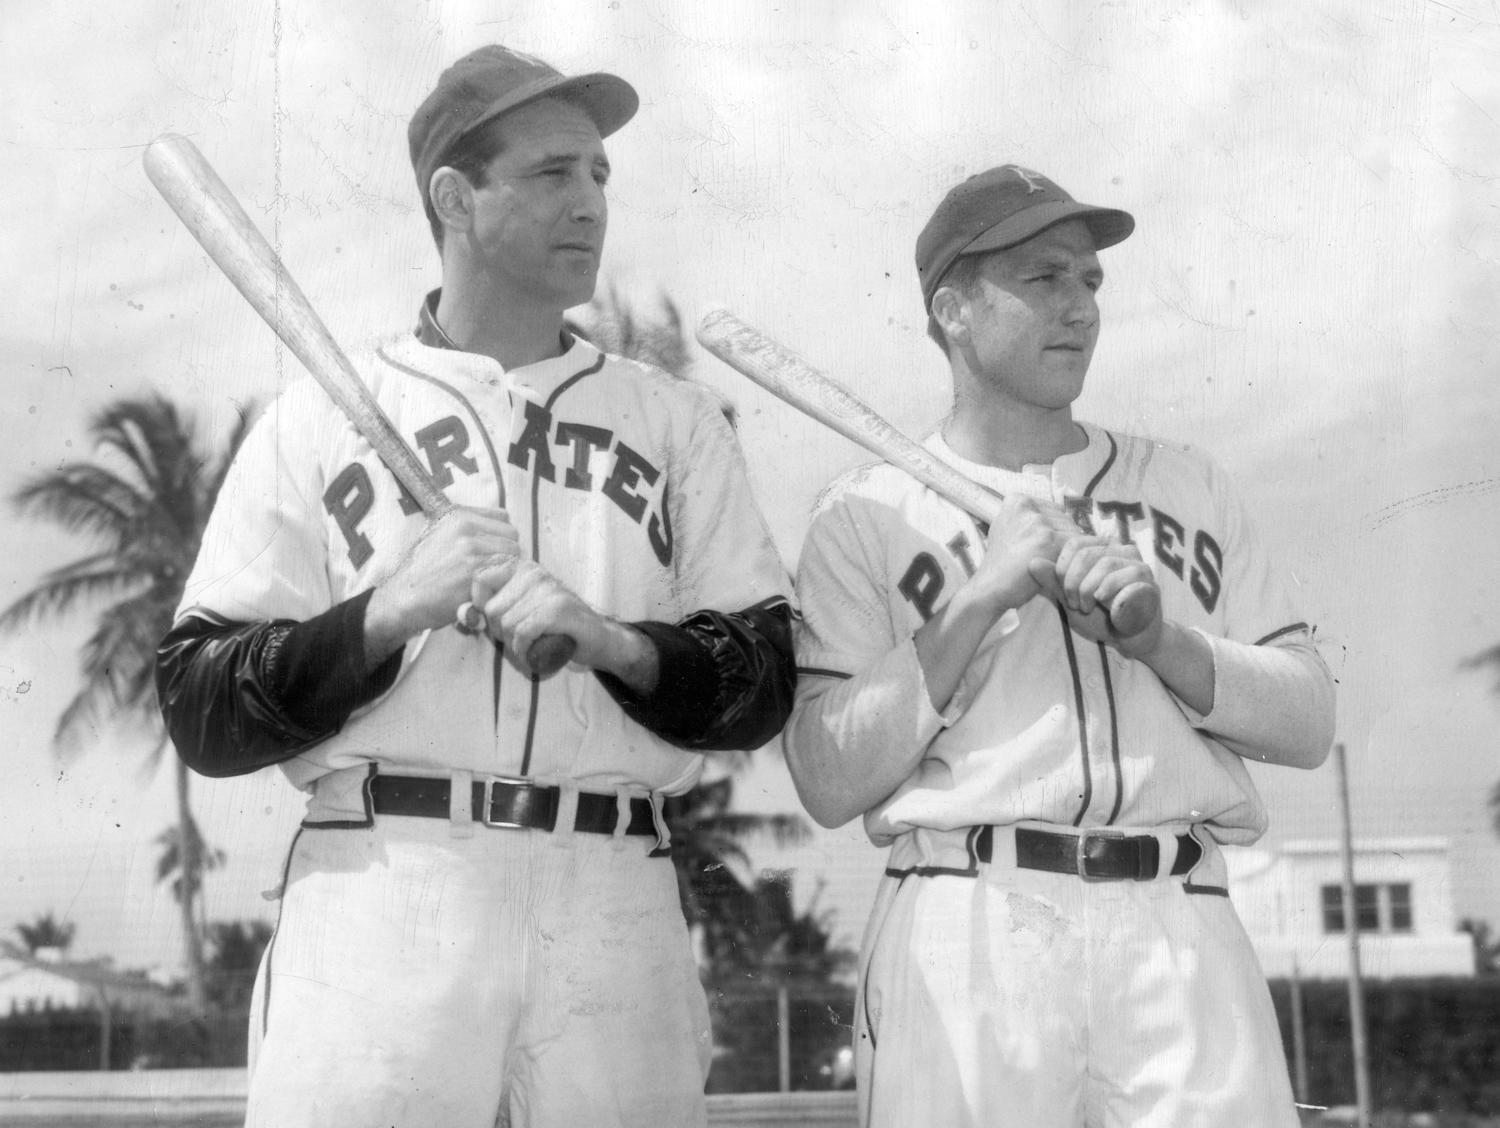 Hank Greenberg, left, and Ralph Kiner, right, were only teammates for the 1947 season, but Kiner credited Greenberg with making him a pull hitter and for boosting his confidence. (National Baseball Hall of Fame and Museum)